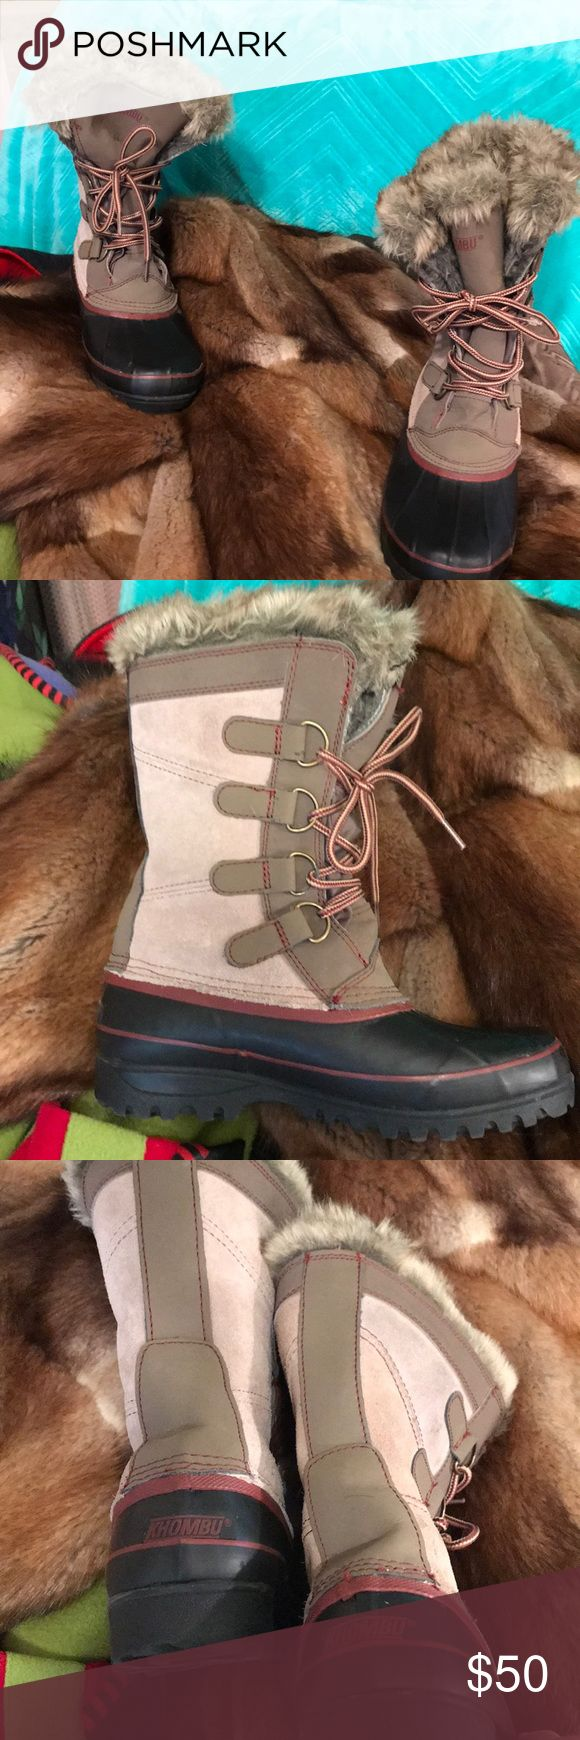 Awesome authentic Khombu boots These mid calf length boots are so cool 😎 looking, not to mention being extremely warm! Snow boots, or fashion to enjoy outside when very cold temperatures. New condition, worn just a couple of times. A couple of small spots on one boot, shown. I think they will come out, just haven't tried. These are perfect for cold climates. Lace up, and fully lined in faux fur. Khombu Shoes Lace Up Boots